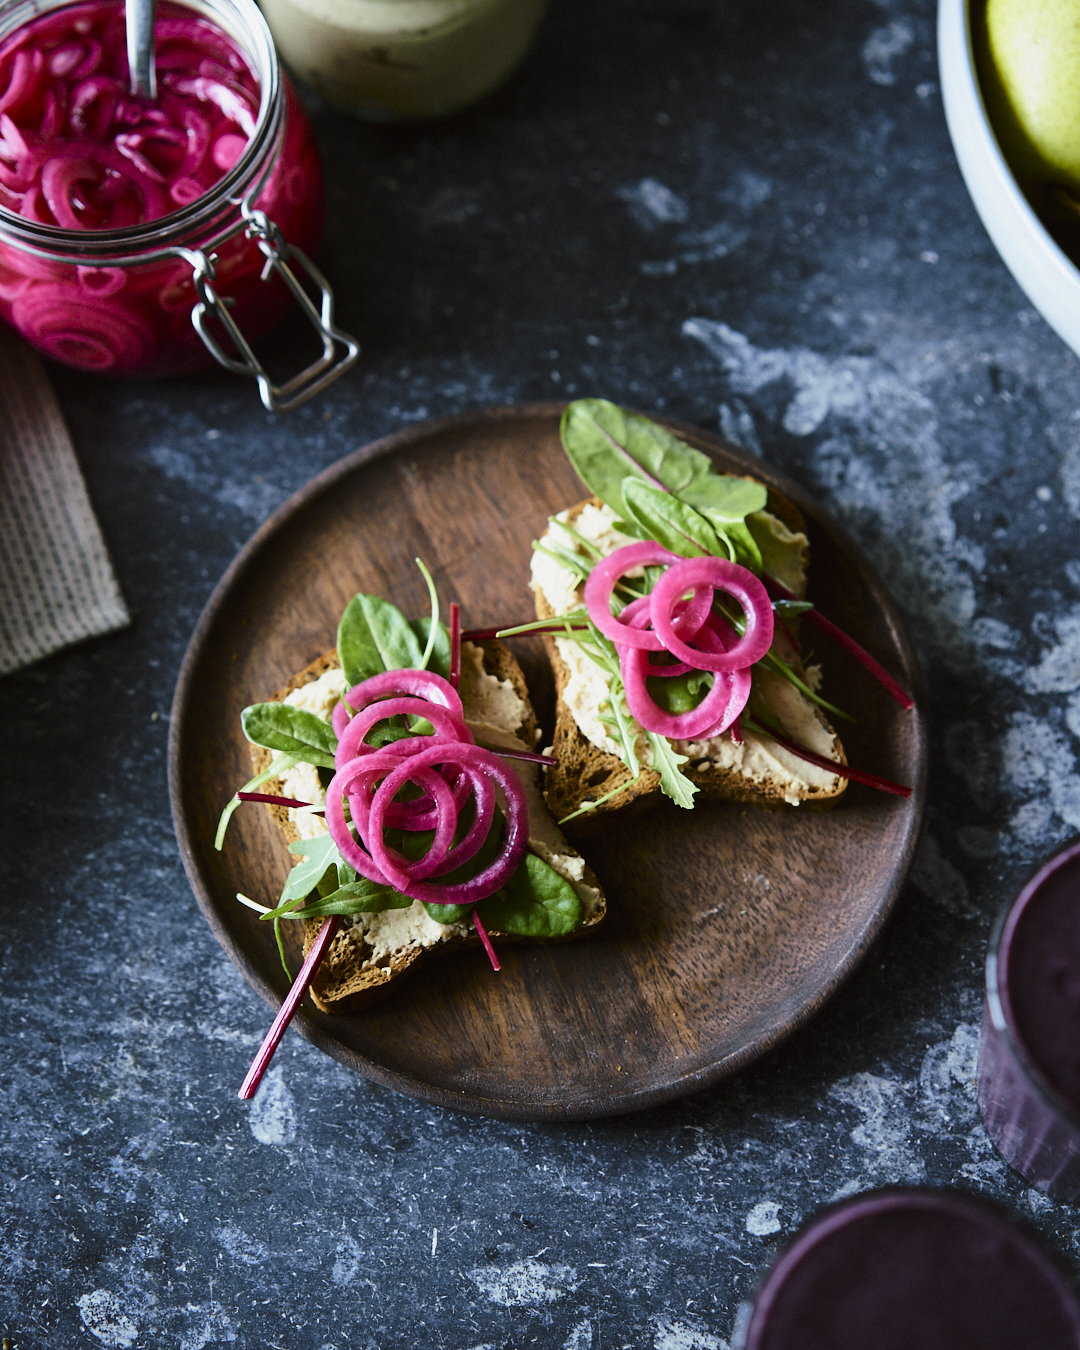 QUICK PICKLED RED ONION | Good Eatings